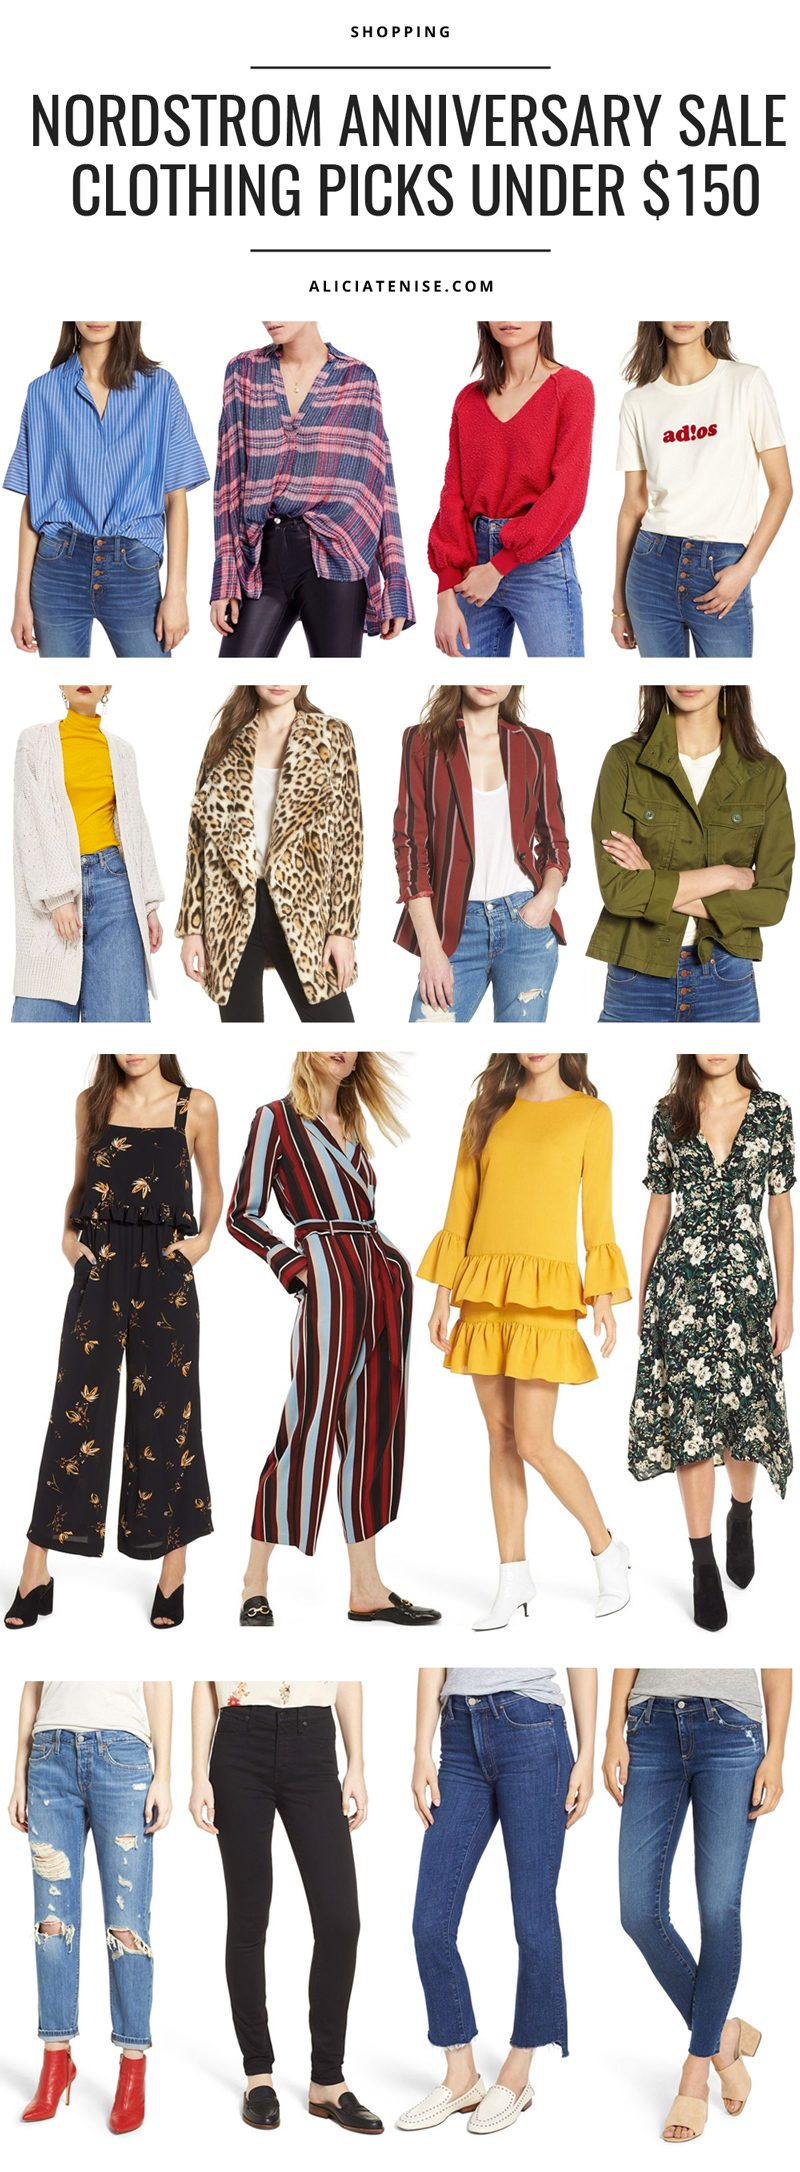 Nordstrom Anniversary Sale: Picks Under $150 featured by popular DC style blogger, Alicia Tenise